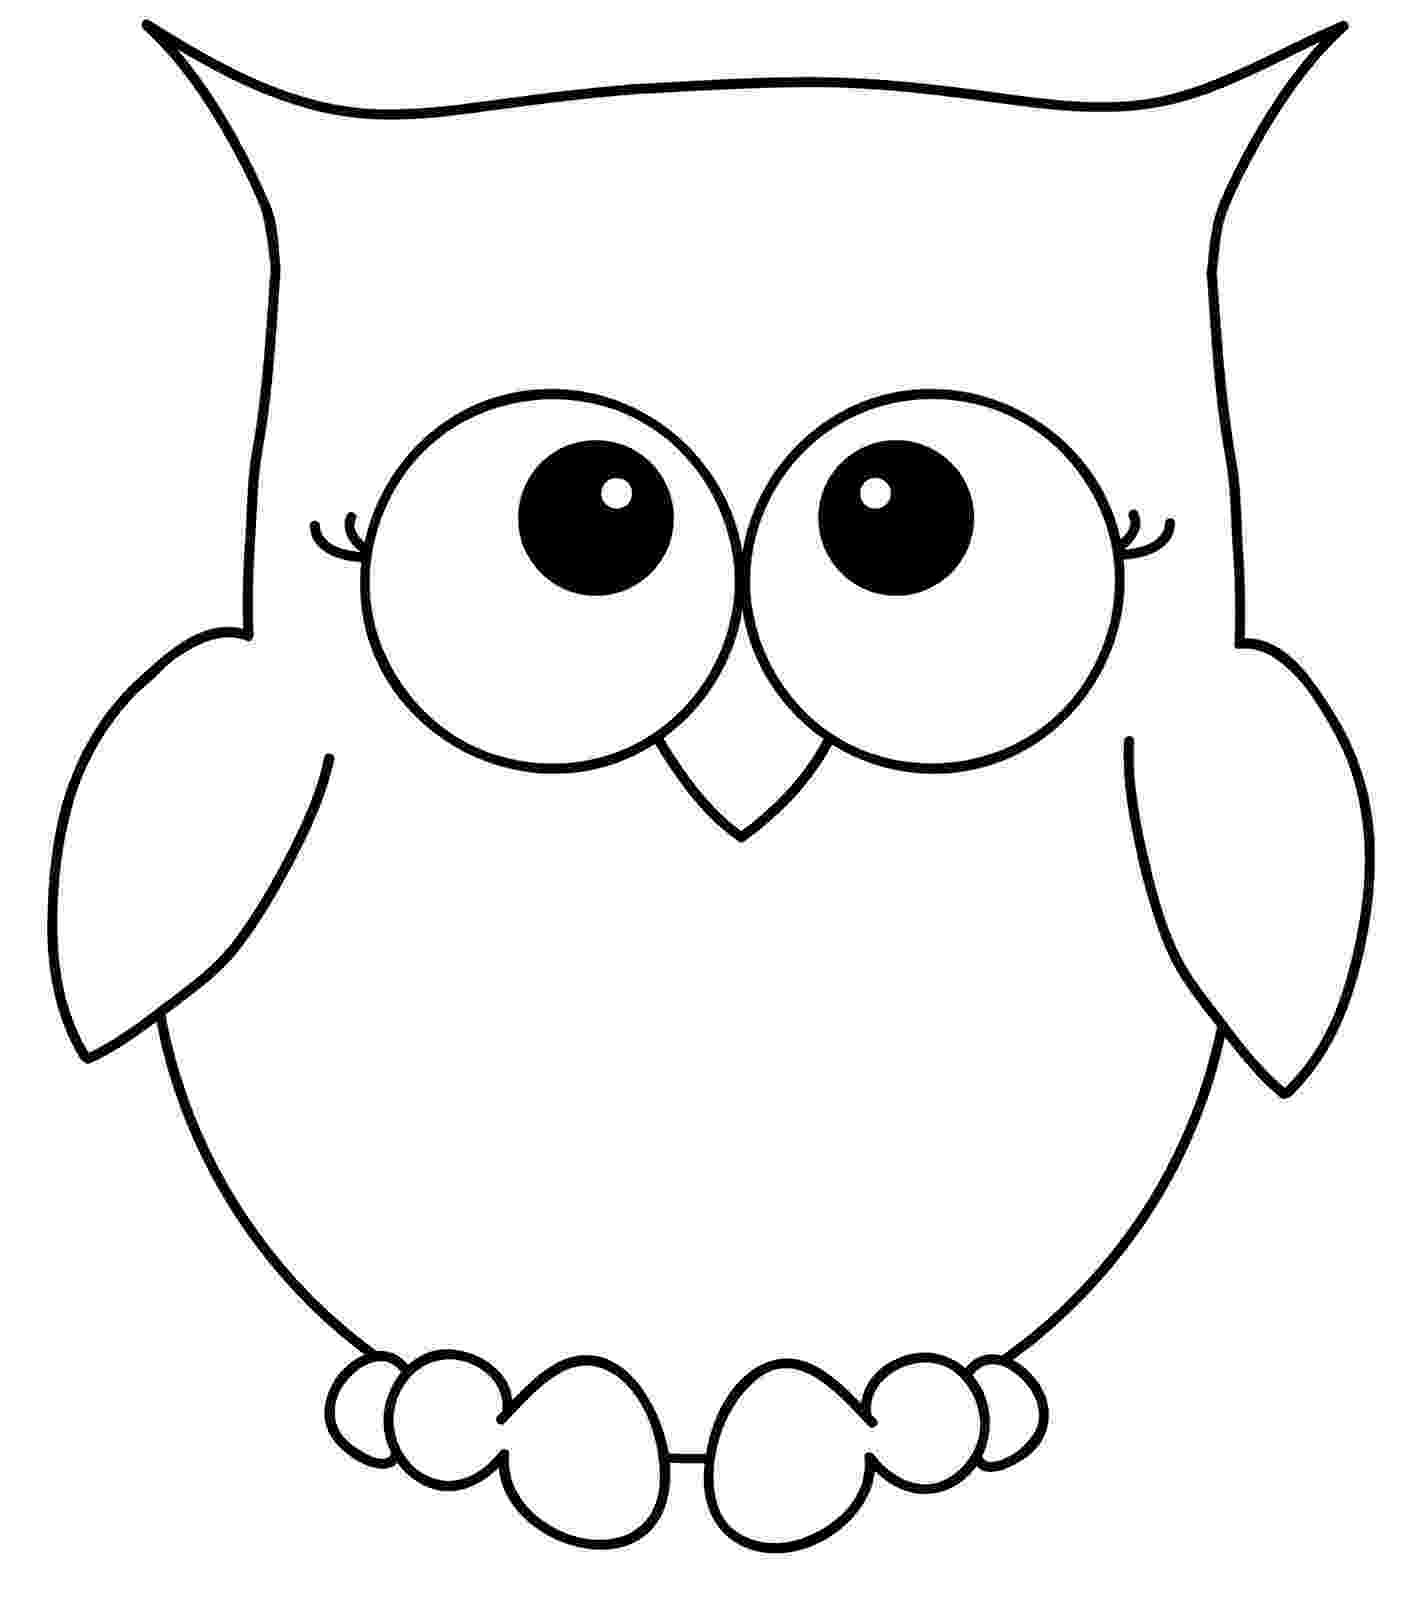 owl colouring template owl coloring pages print free printable cute owl coloring colouring template owl